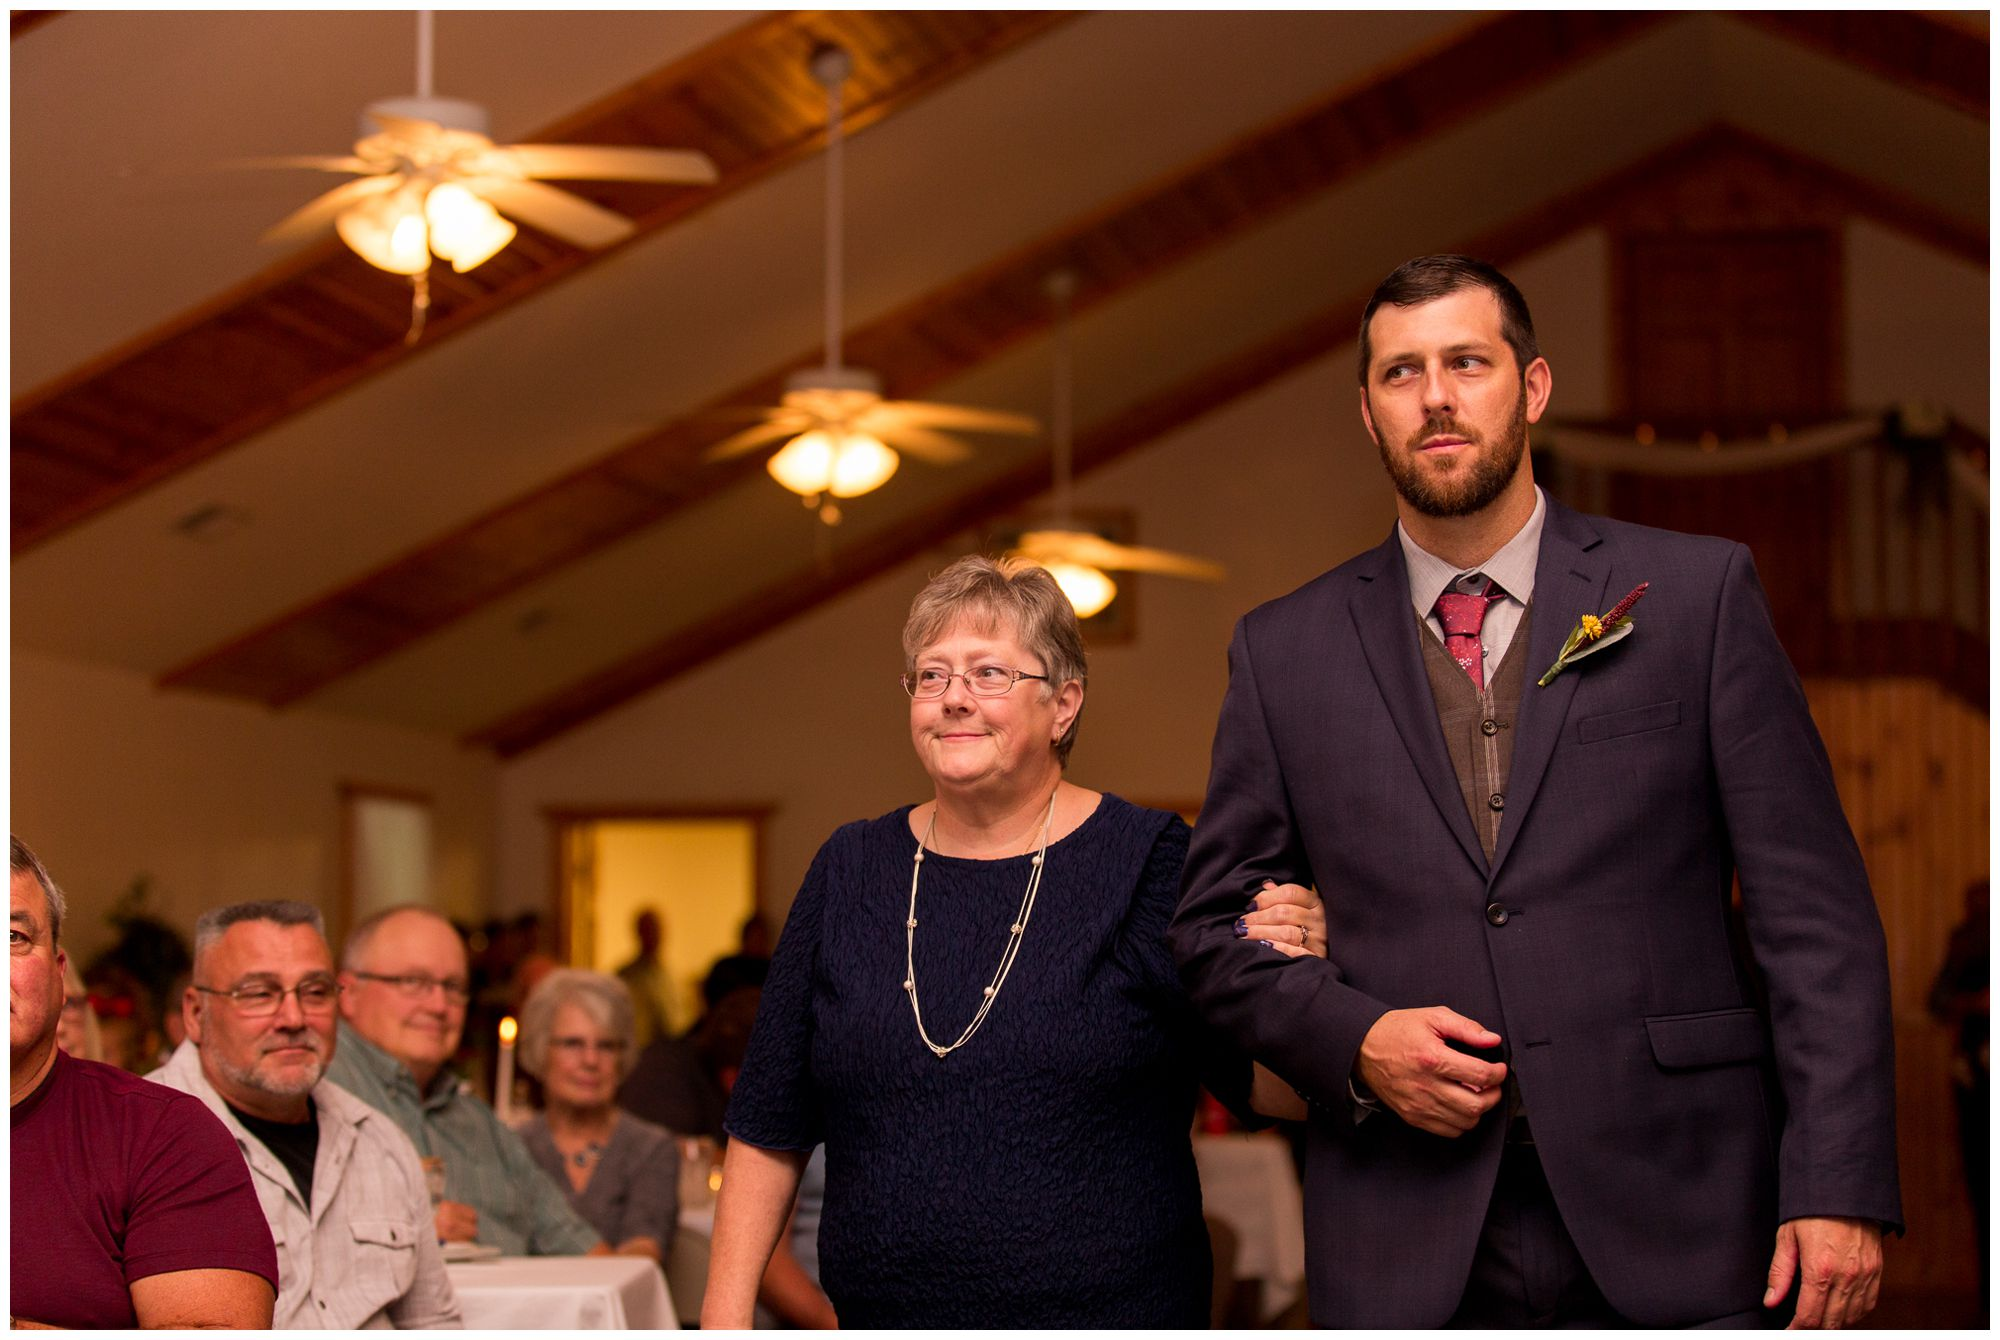 groom walking mother down the aisle before wedding ceremony in Peru Indiana